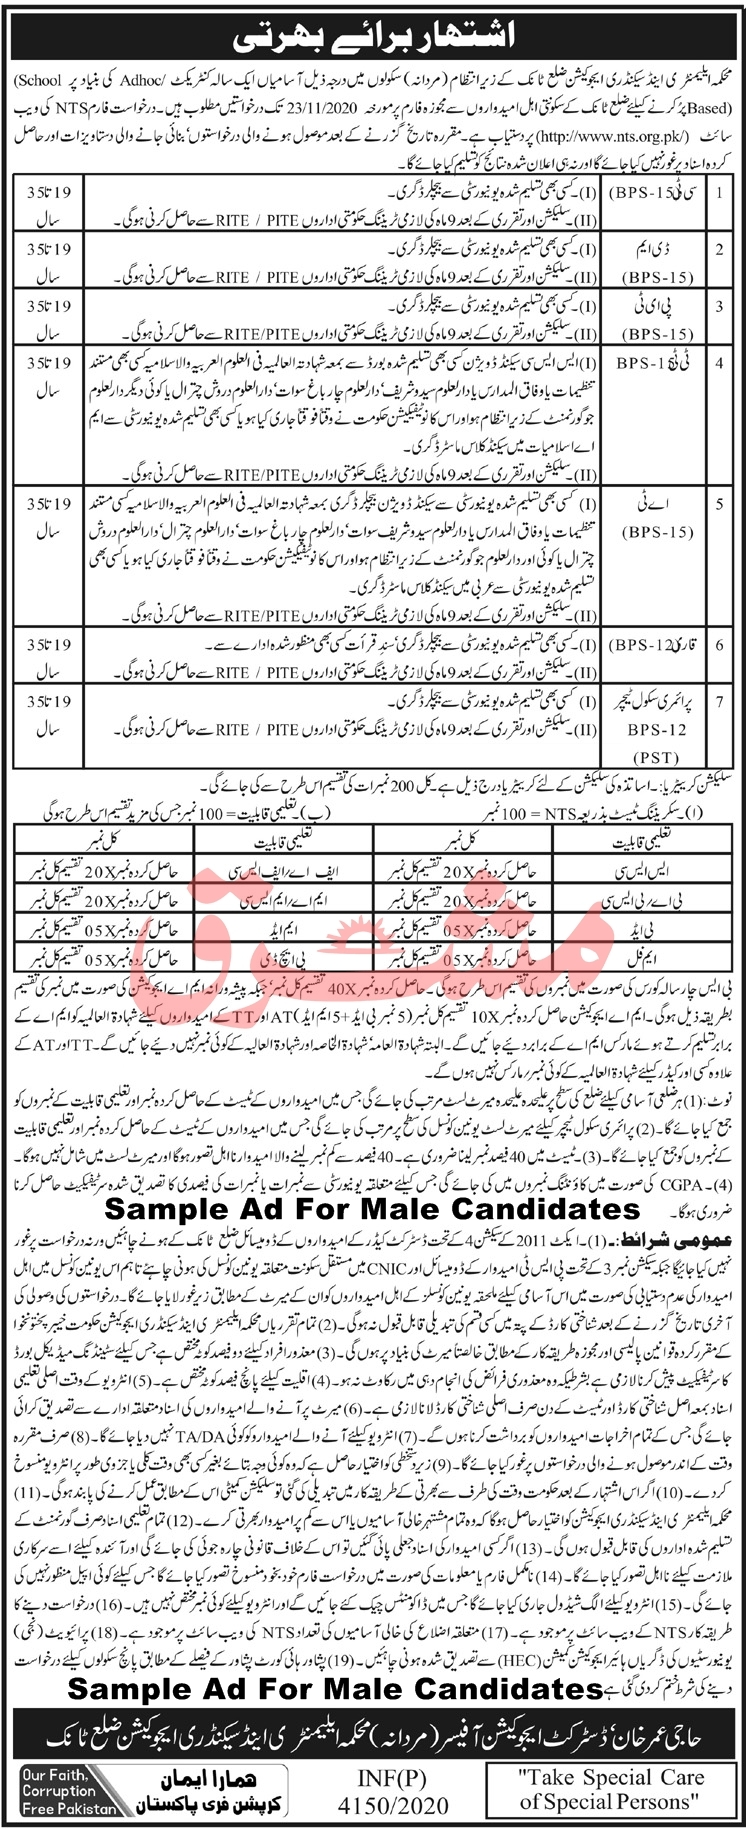 Sample Ad For Male Candidates